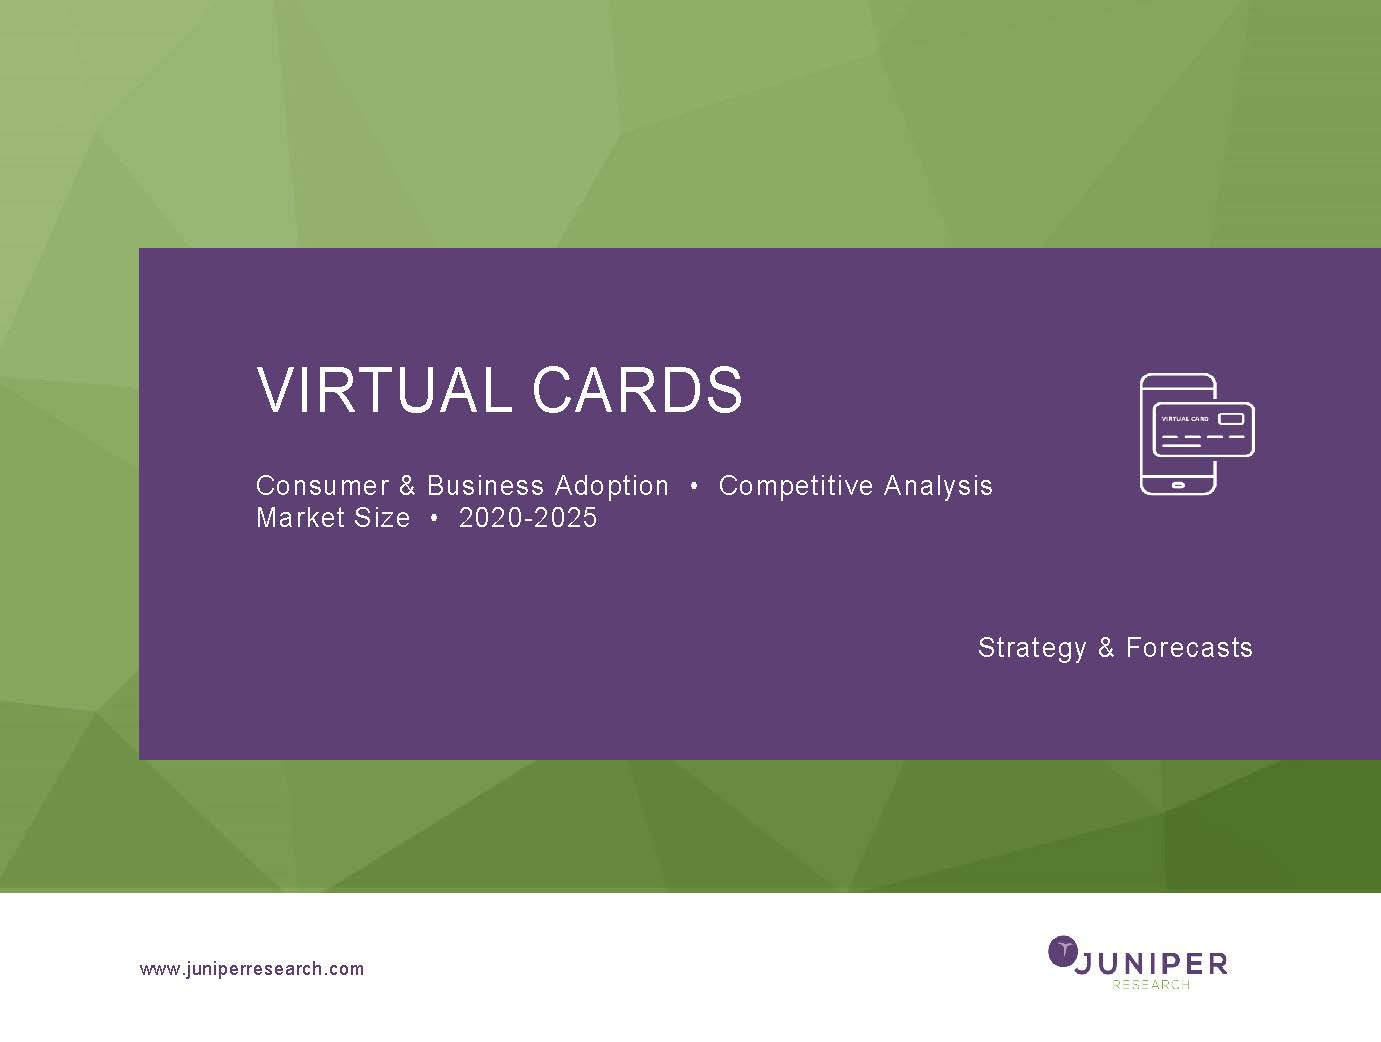 Virtual Cards: Consumer & Business Adoption, Competitive Analysis & Market Size 2020-2025